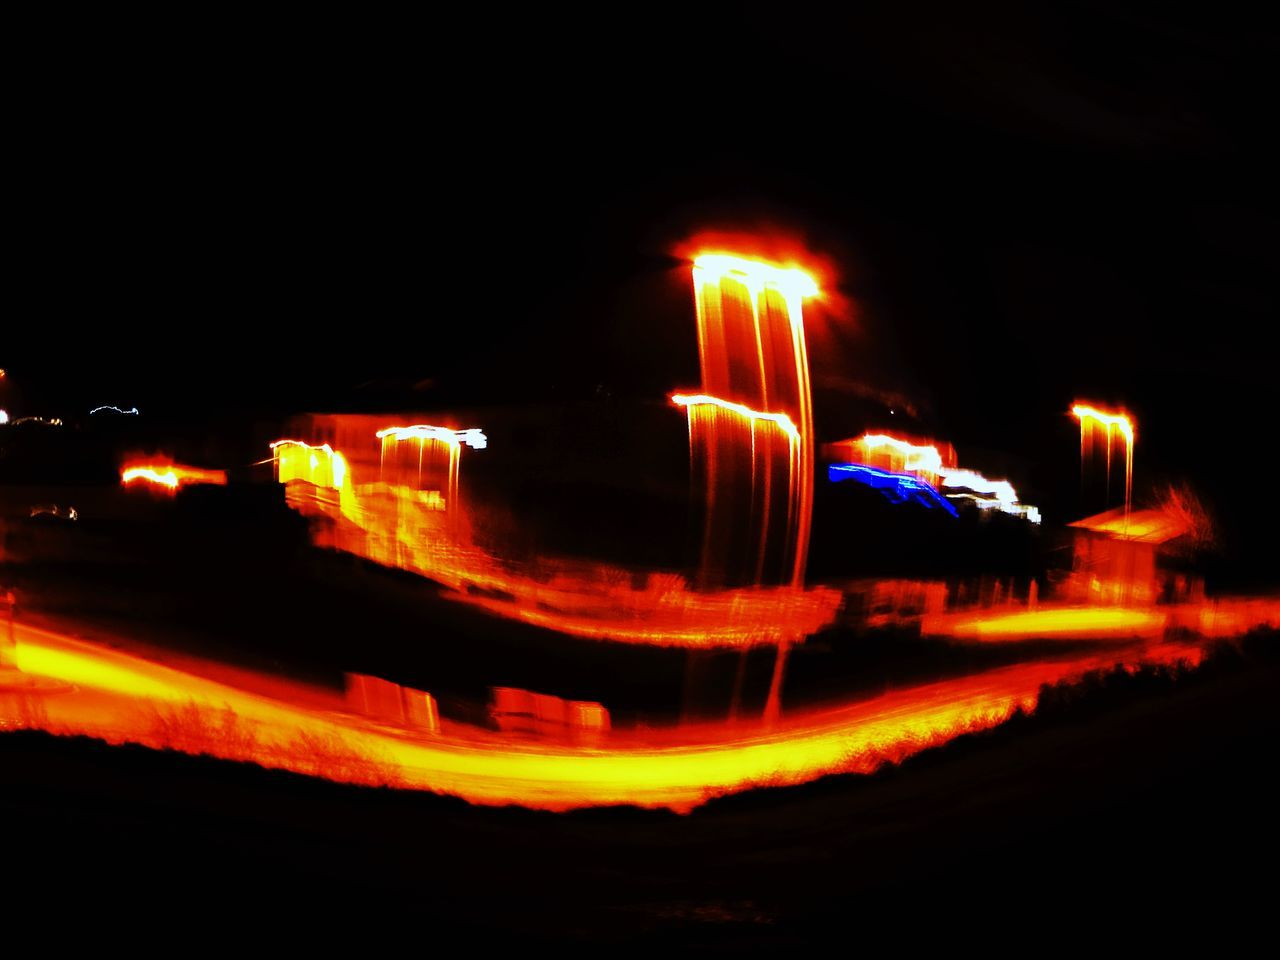 illuminated, night, blurred motion, outdoors, speed, mode of transport, motion, no people, transportation, city, architecture, sky